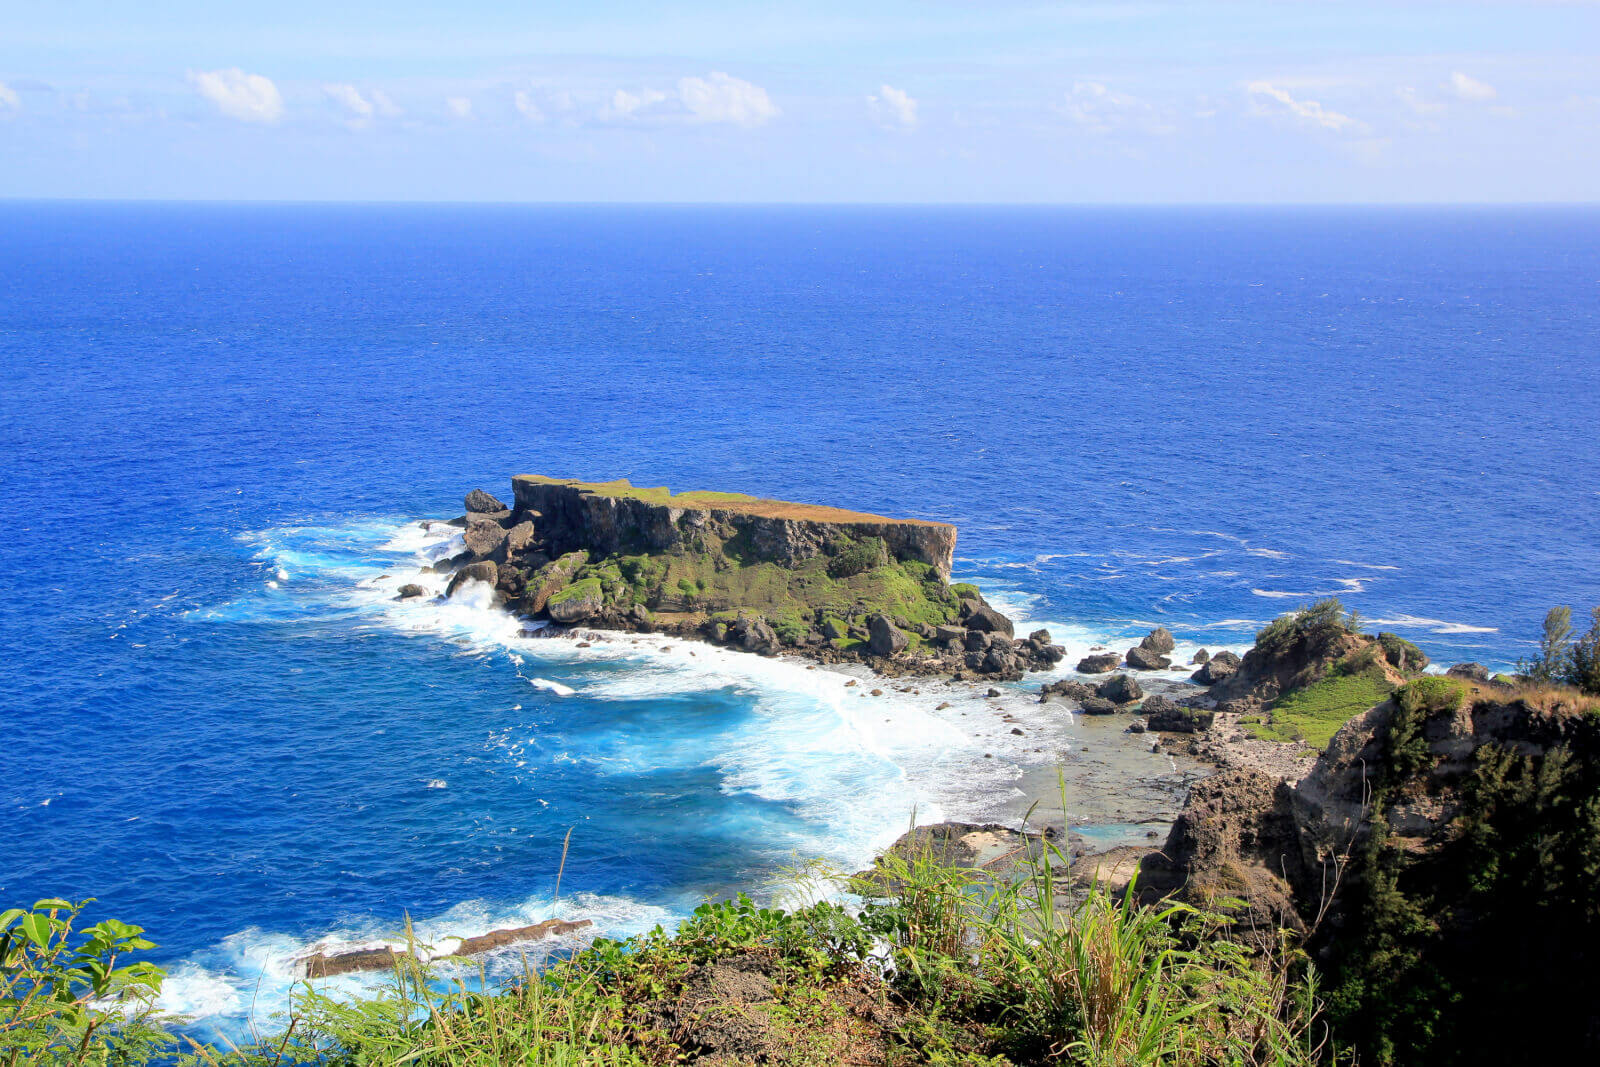 Thumnail photo of Saipan